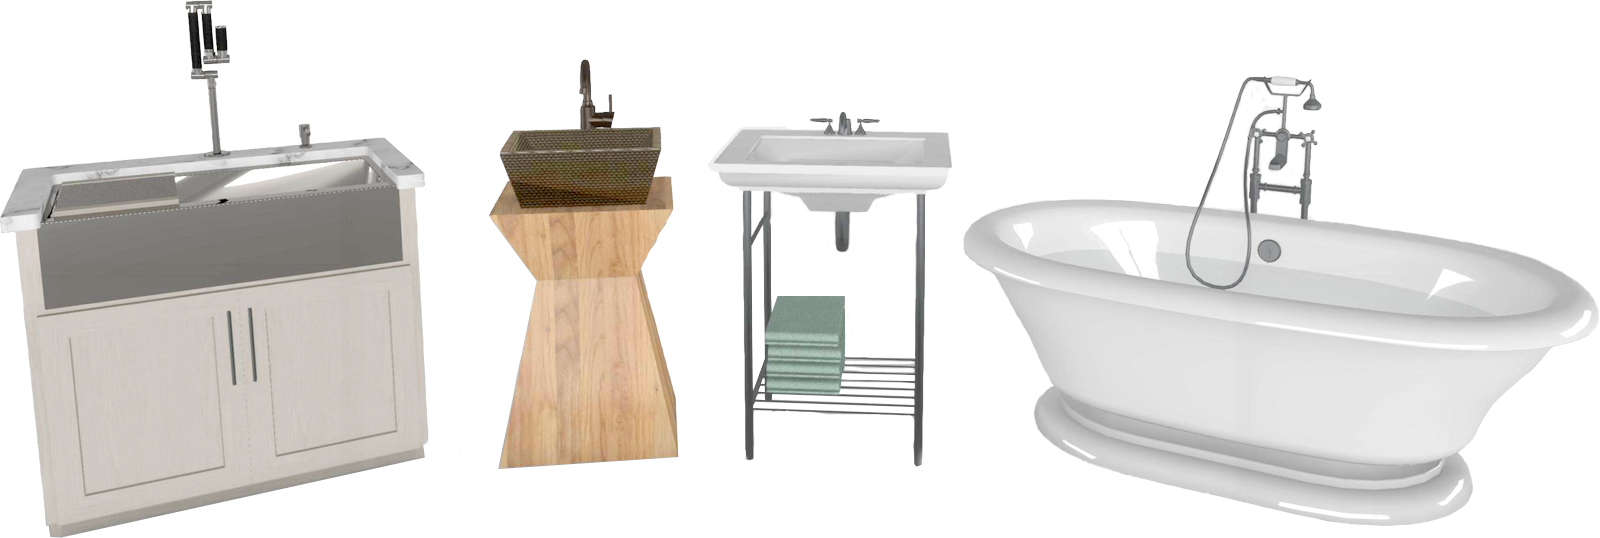 A farmhouse kitchen sink alongside two styles of bathroom sinks and a bathtub